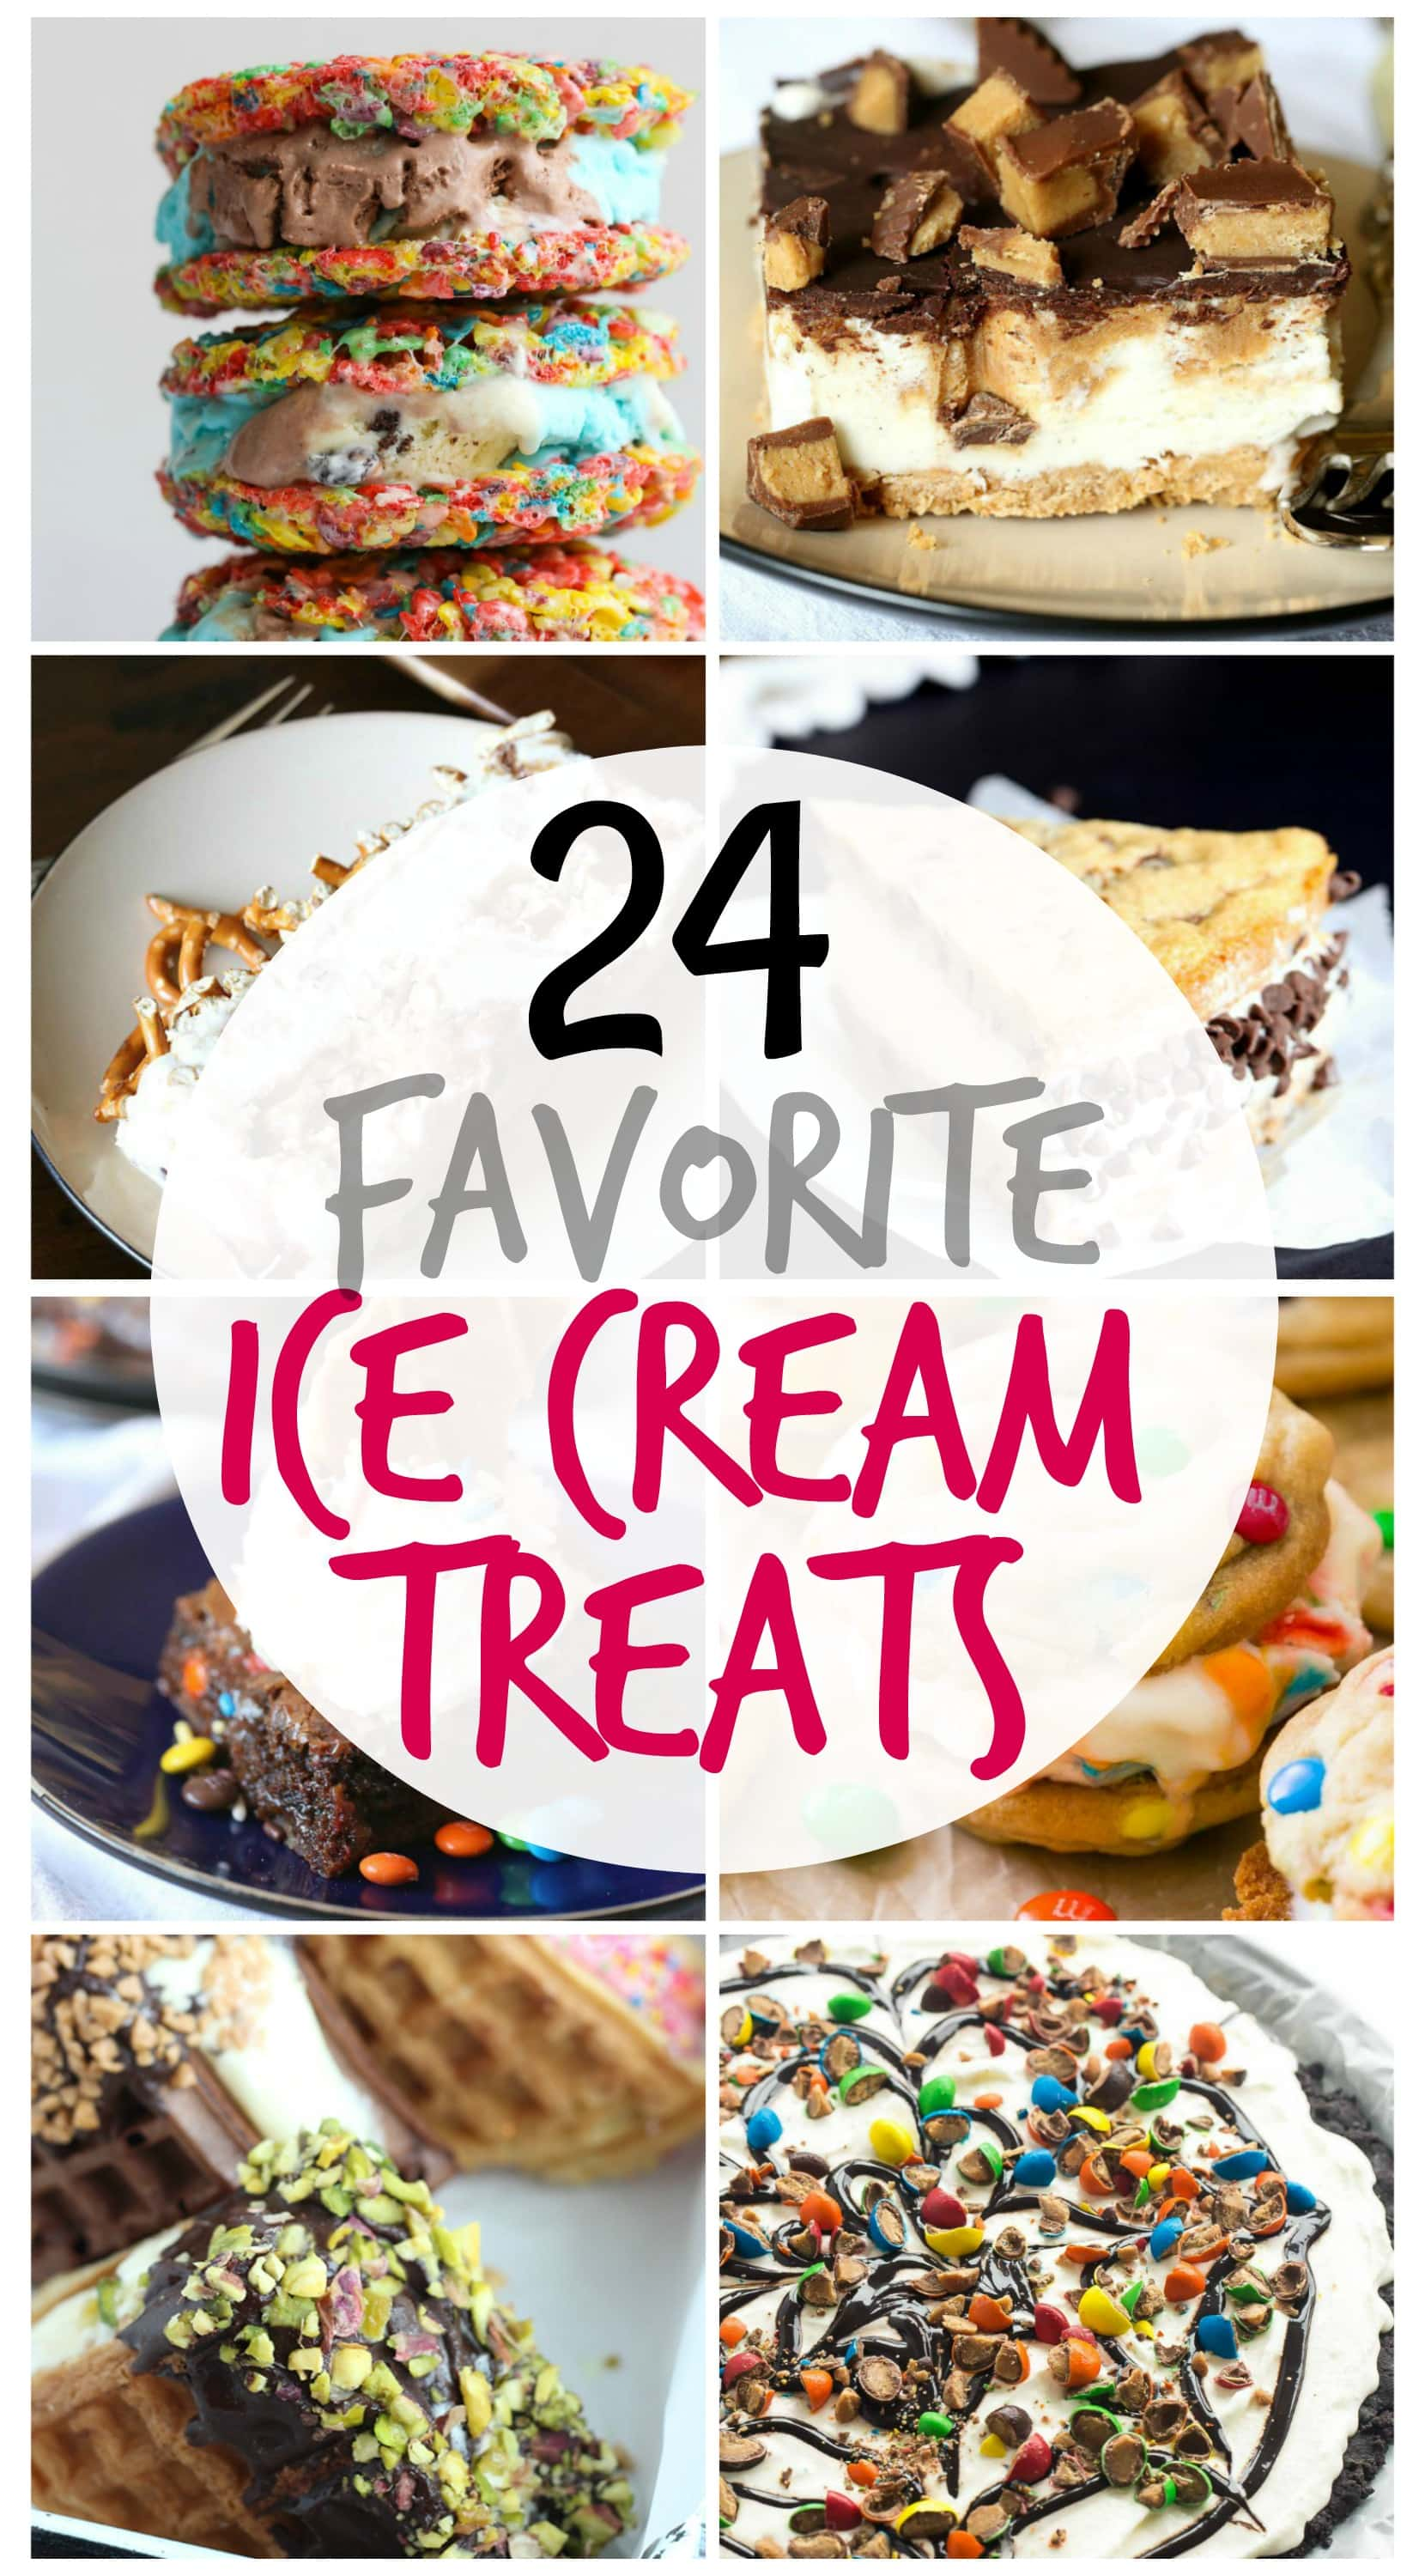 24 Favorite Ice Cream Treats